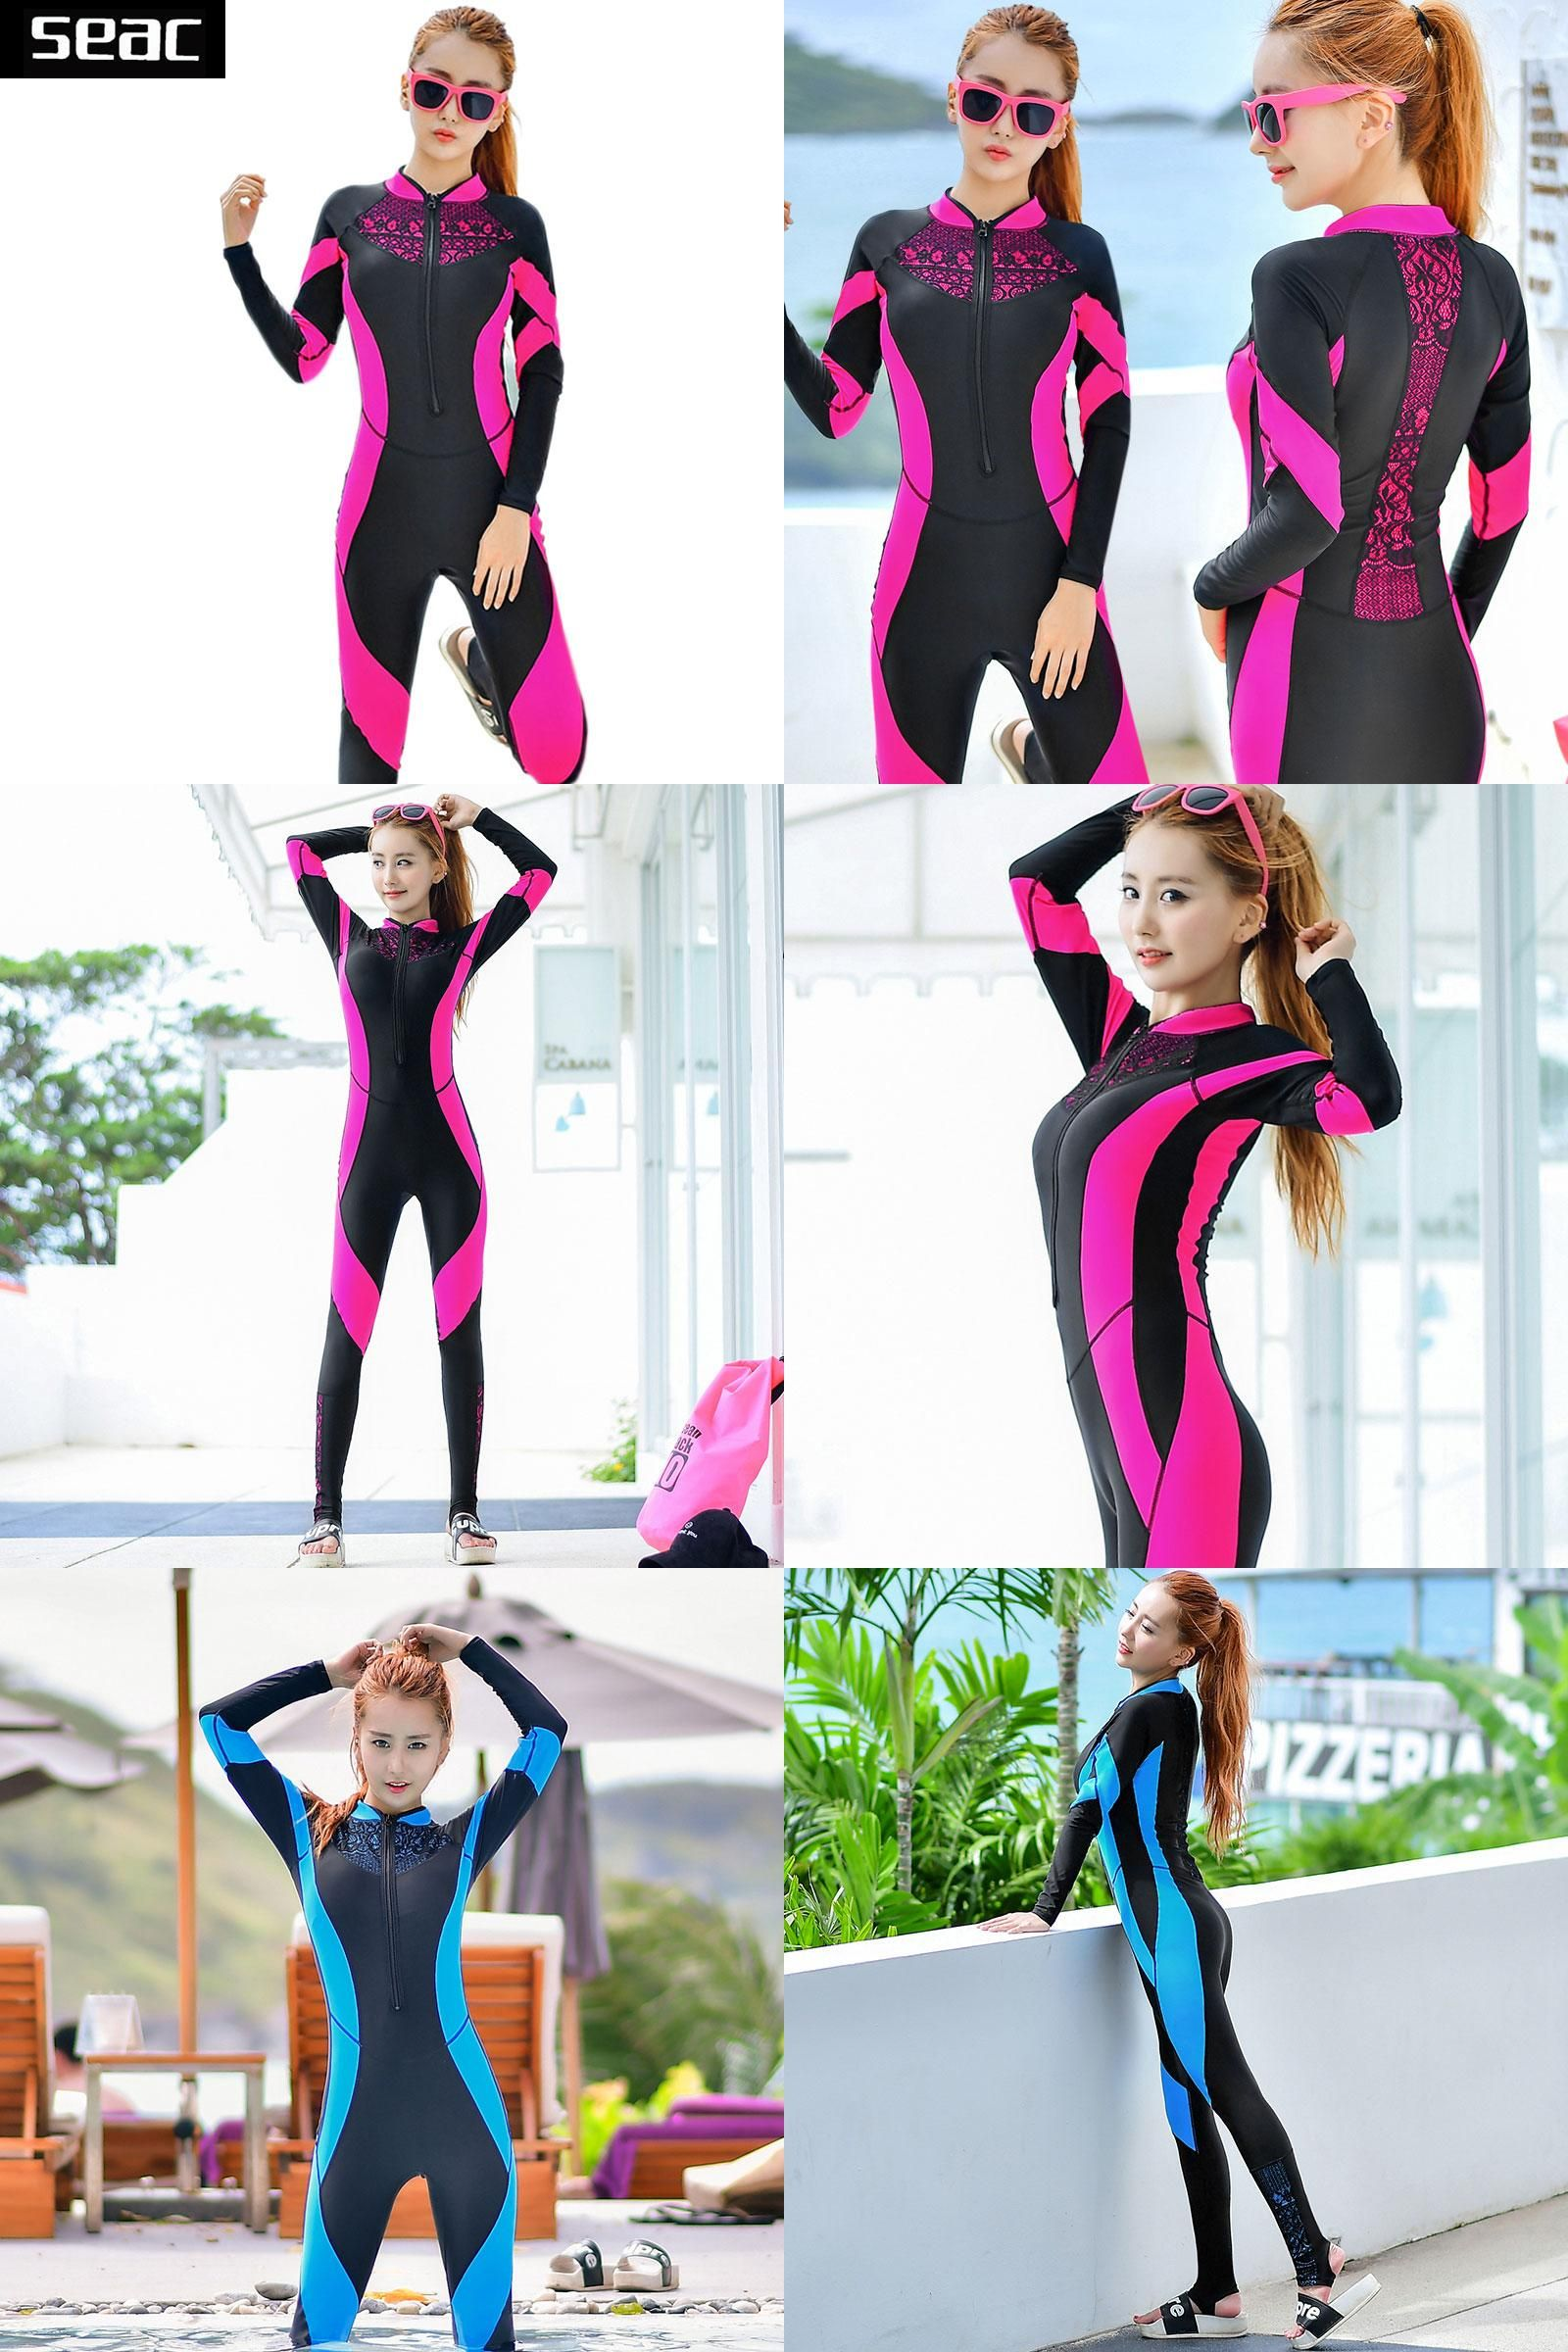 Visit to Buy  SEAC Lace Wetsuit Women Zipper Swimsuit Full Body Jumpsuits  Diving suit Rash Guard Wetsuits for Swimming Surfing Sports Clothing   ... ebb098d55